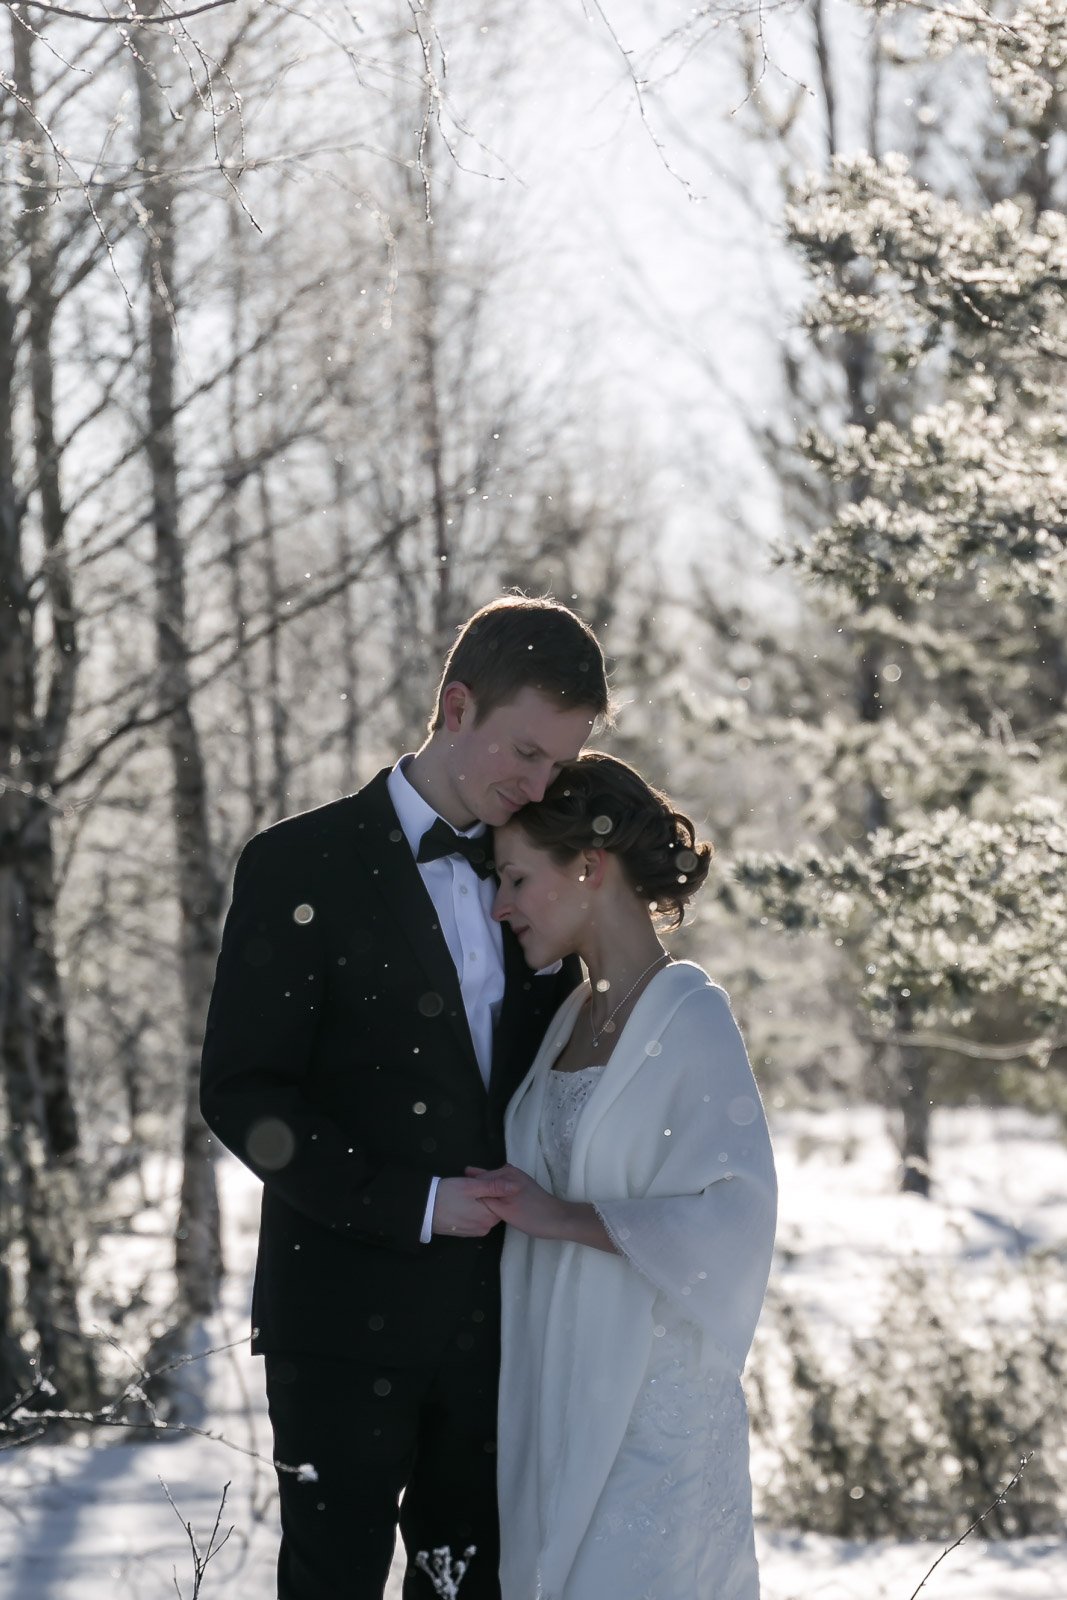 Winter Wedding Shoot in Oulu, Finland   on Due fili d'erba   Two Blades of grass   Photography by Thais FK